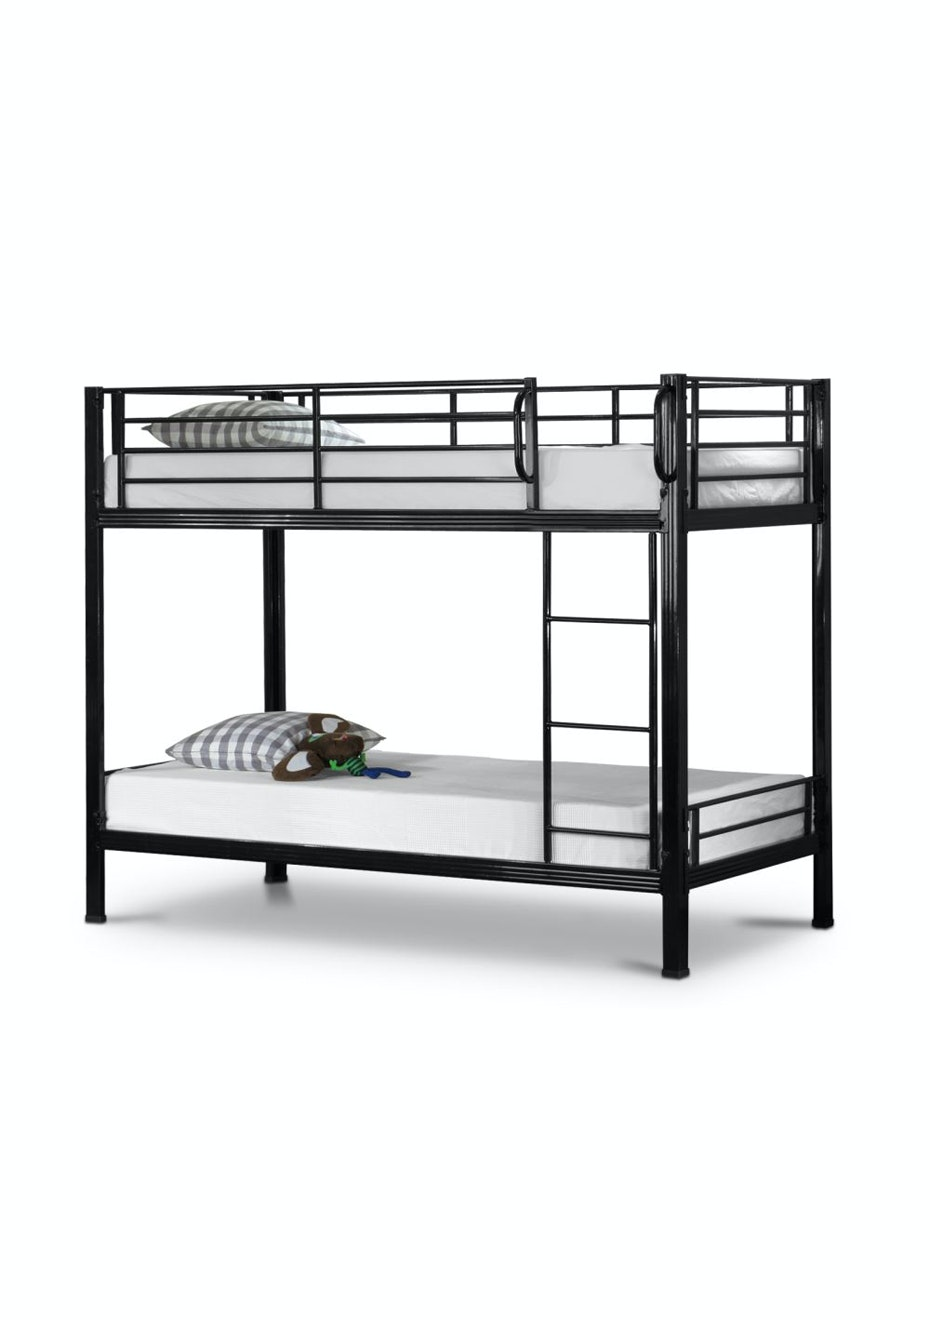 Picture of: Metal Bunk Bed Frame White Beds Mattress Refresh Onceit